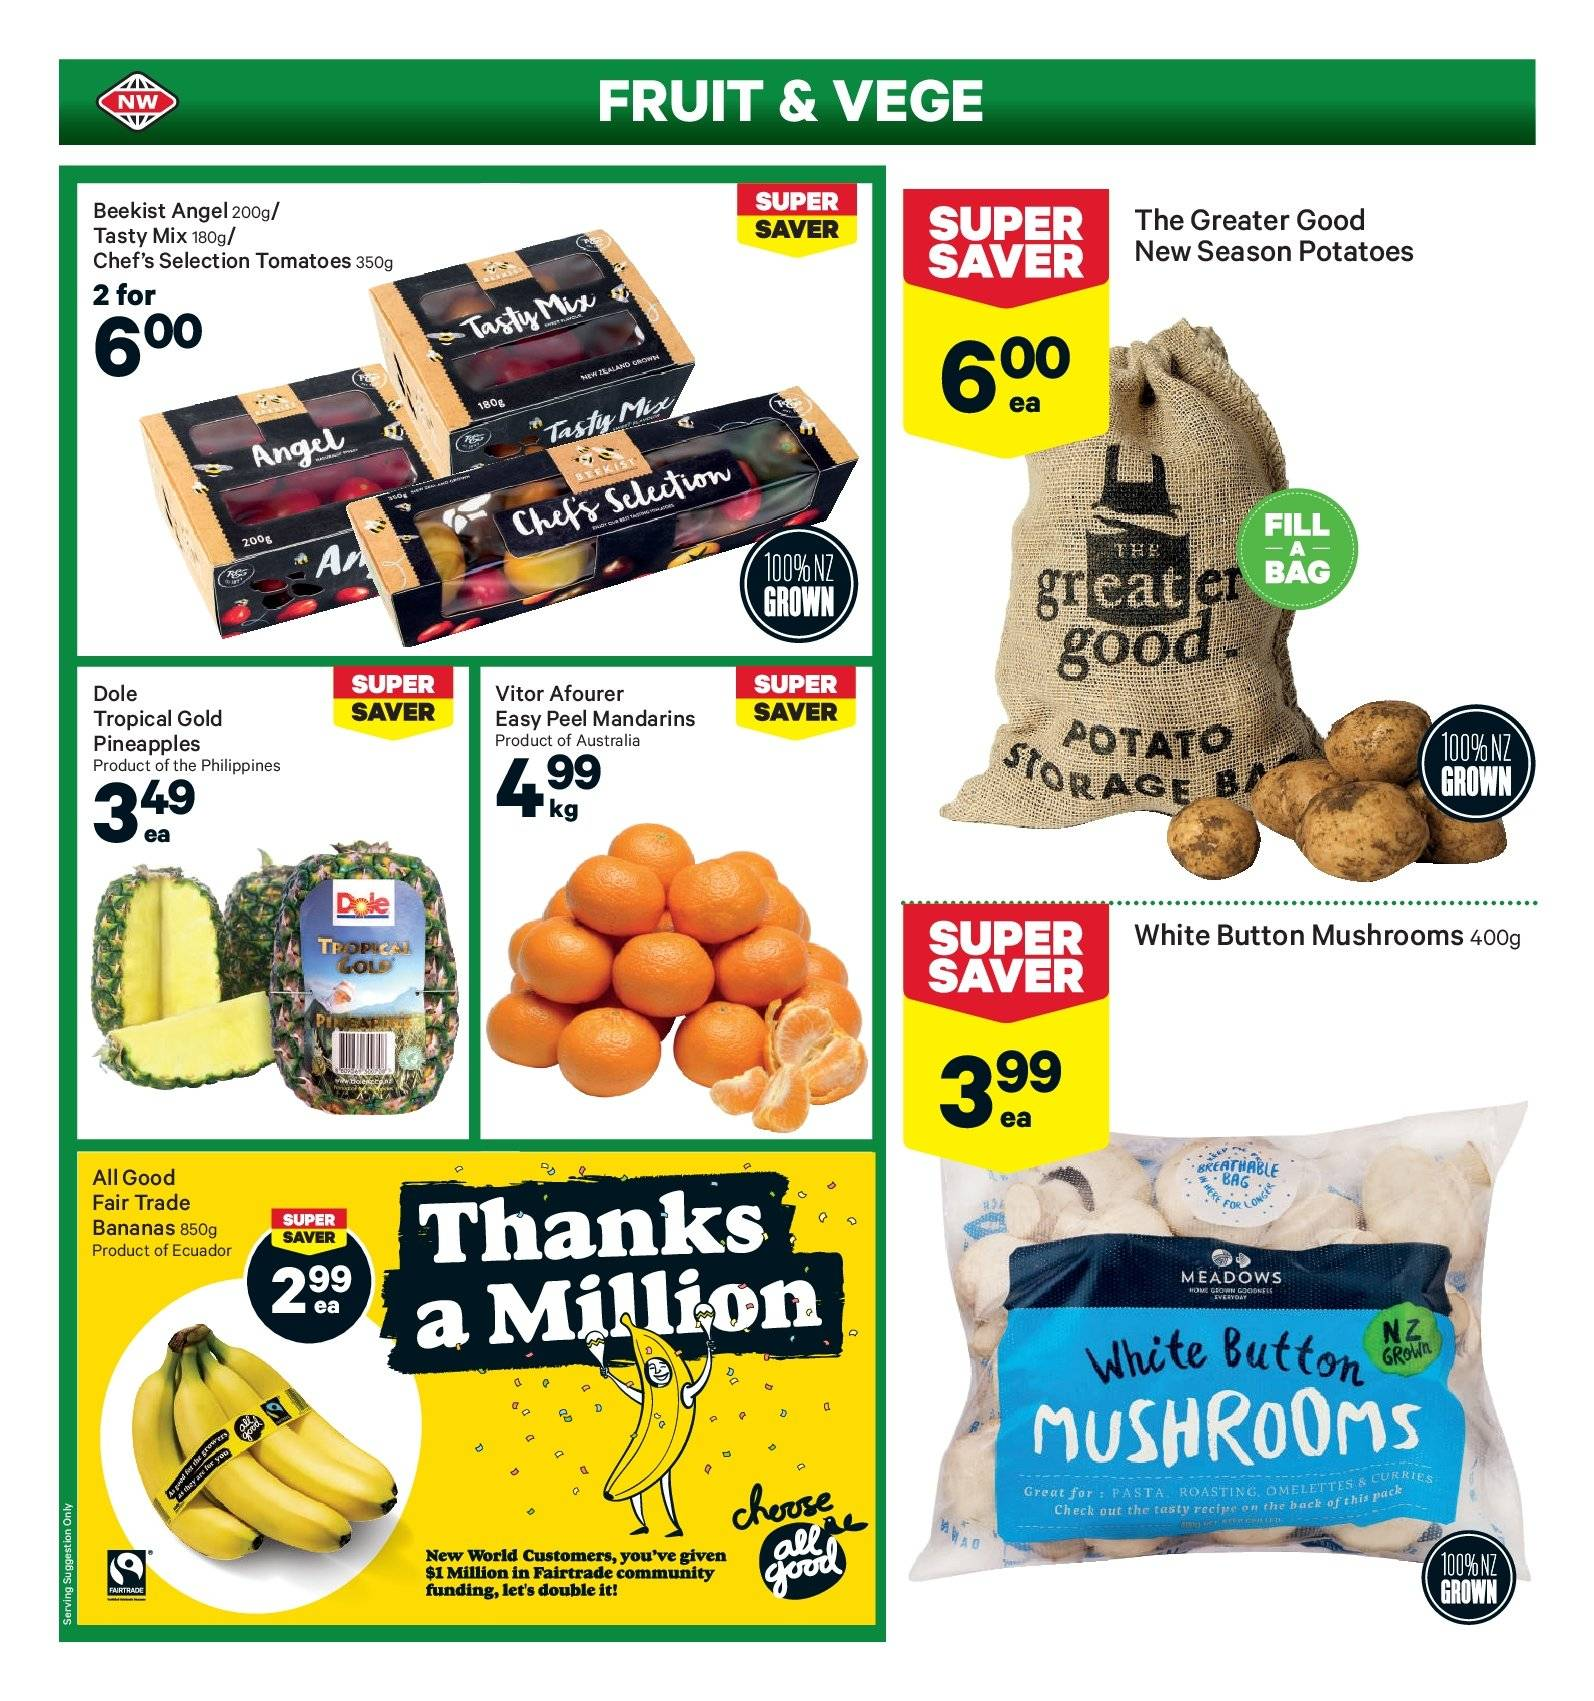 New World mailer - 29.10.2018 - 04.11.2018 - Sales products - angel, bag, bananas, mushrooms, tomatoes, pineapple, potatoes, pasta, fruit, dole. Page 2.